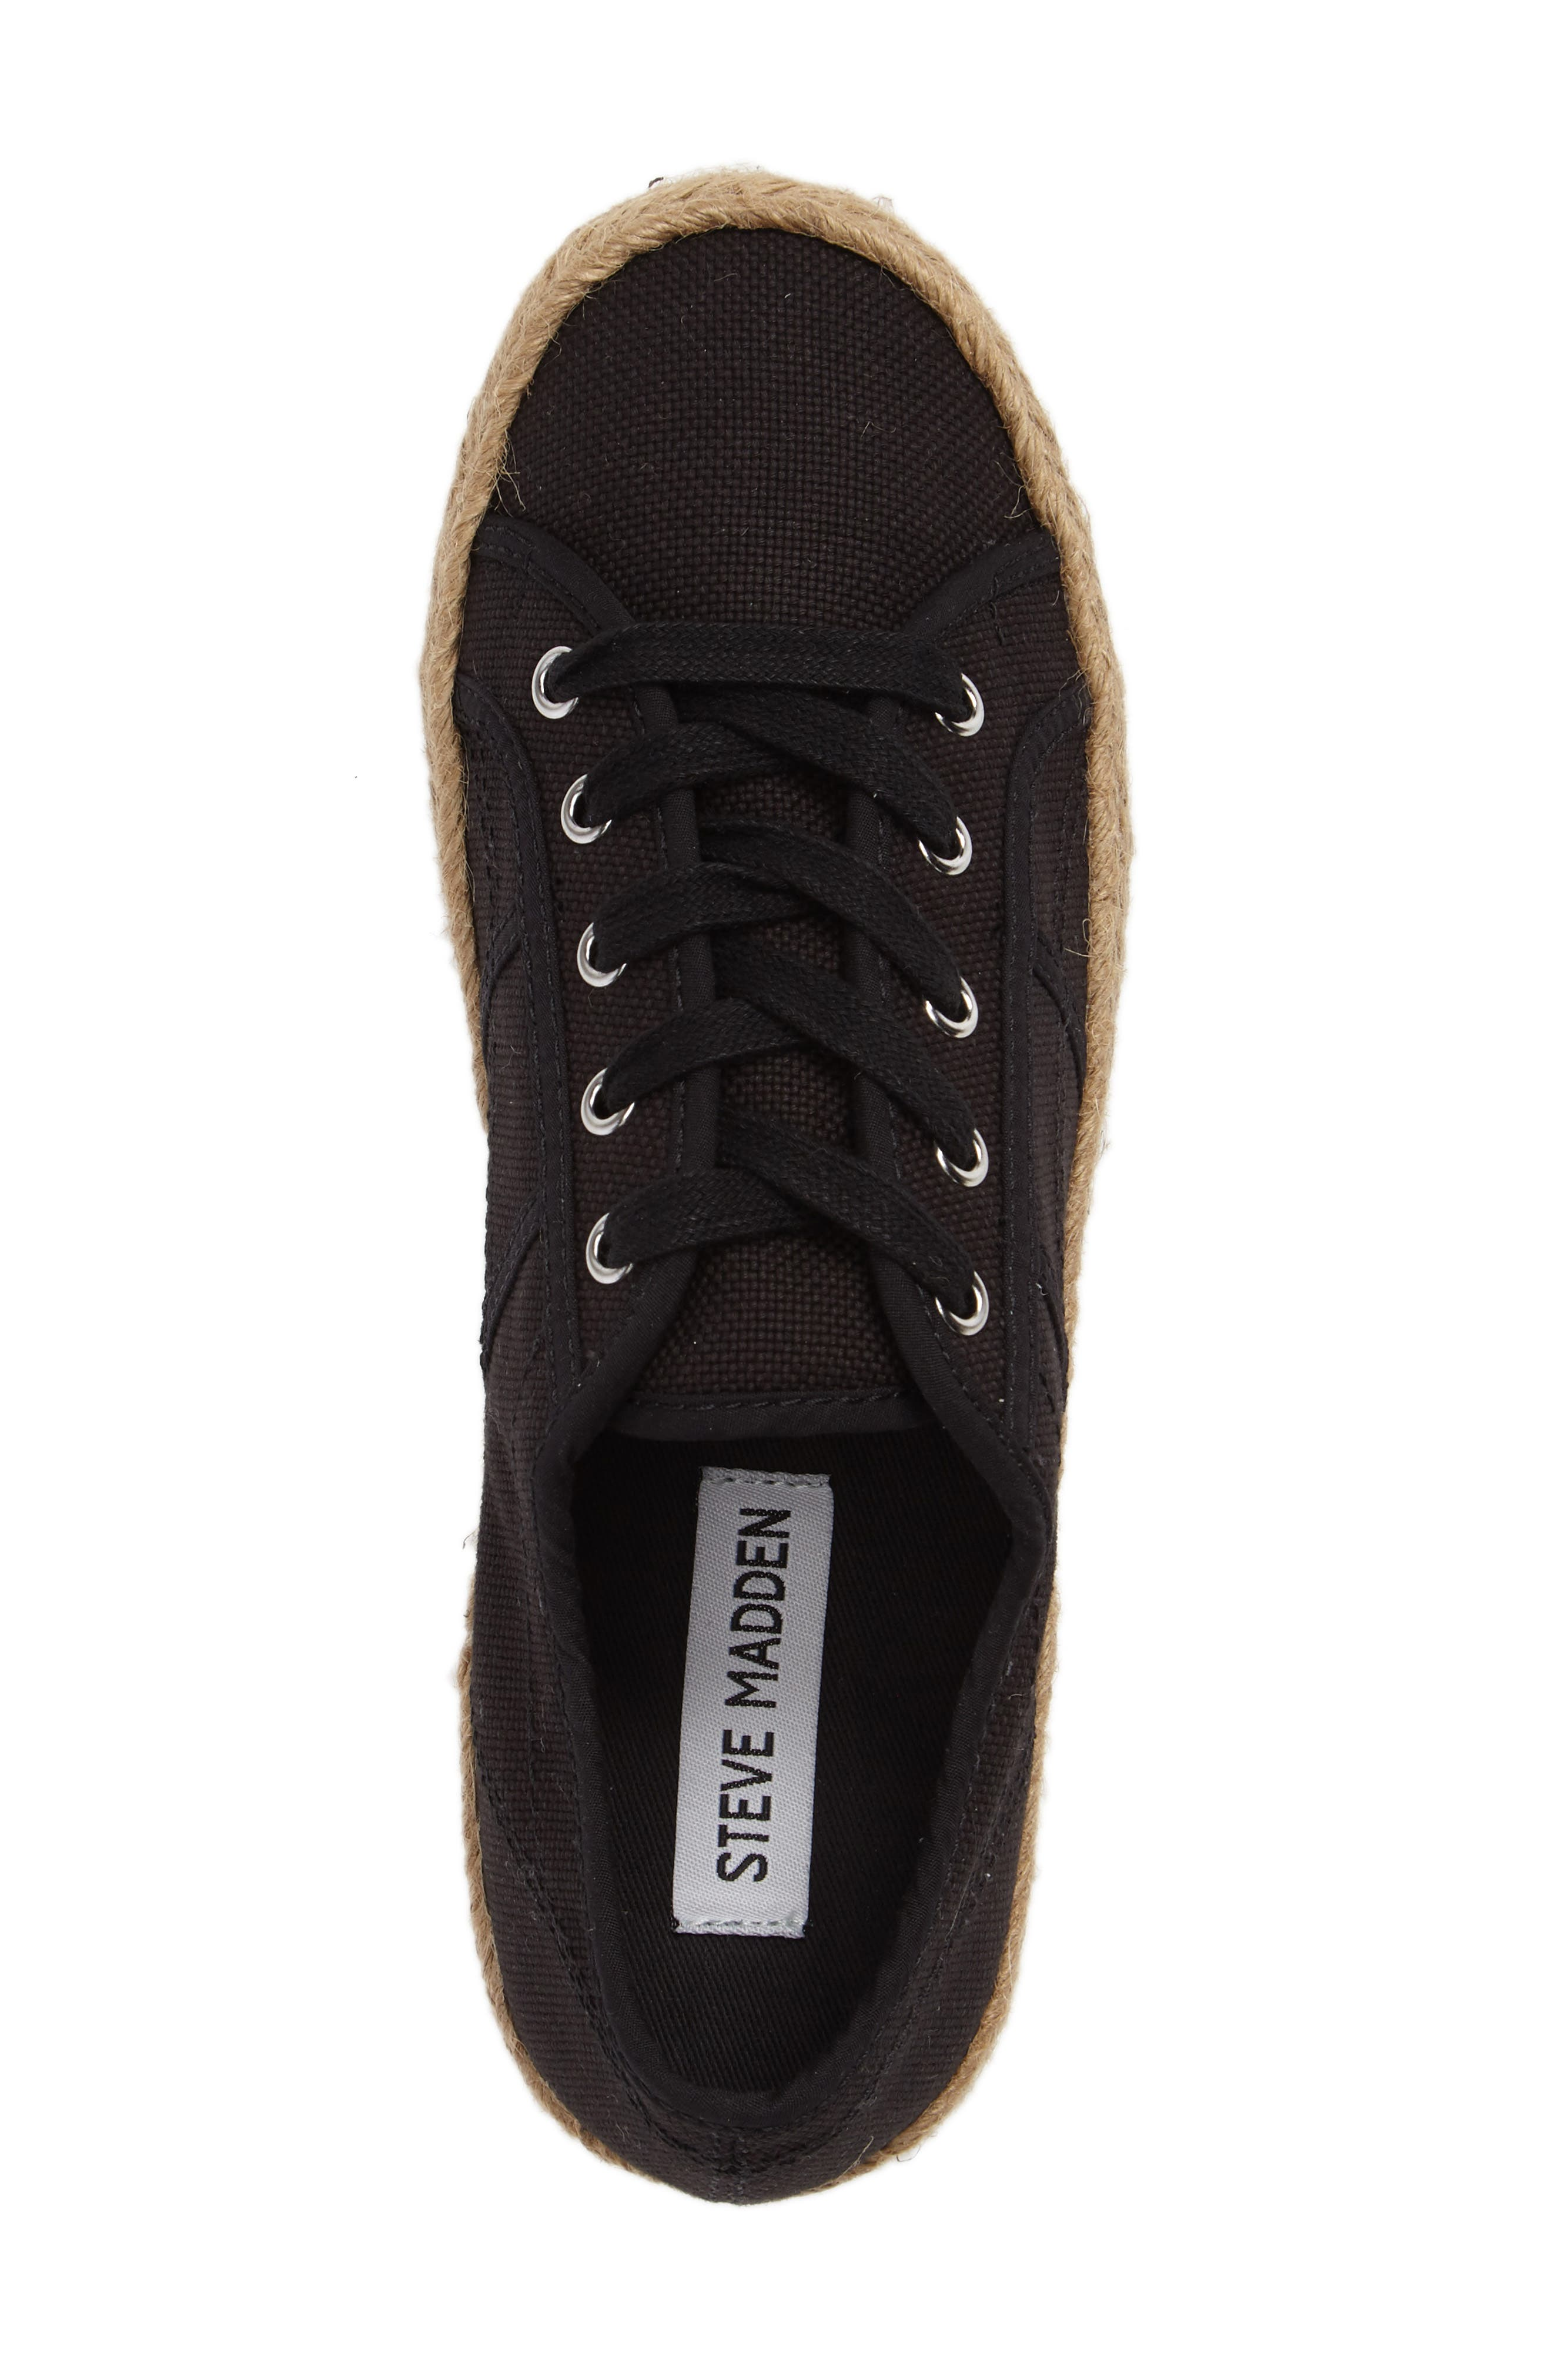 Hampton Platform Sneaker,                             Alternate thumbnail 3, color,                             007